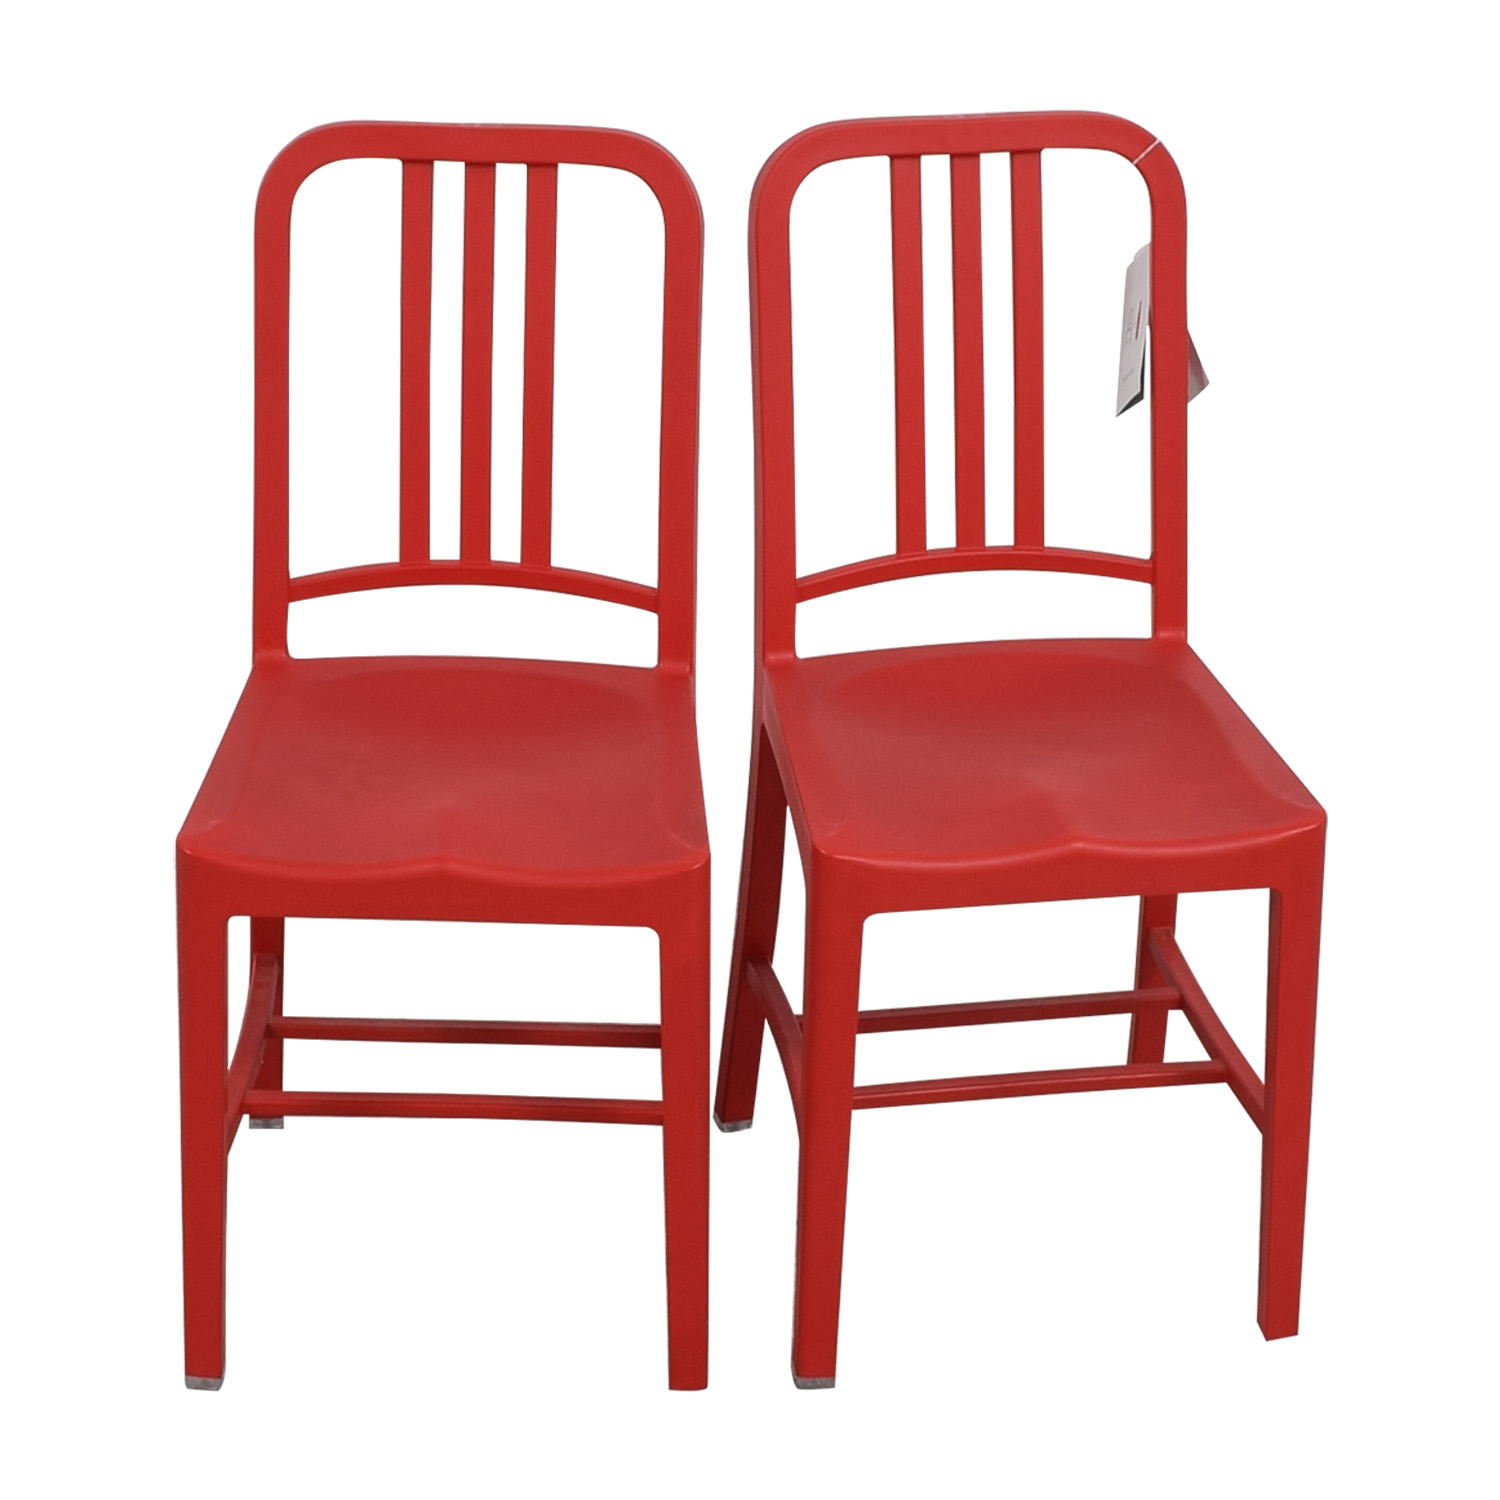 Emeco 111 Navy Recycled Red Chairs / Dining Chairs